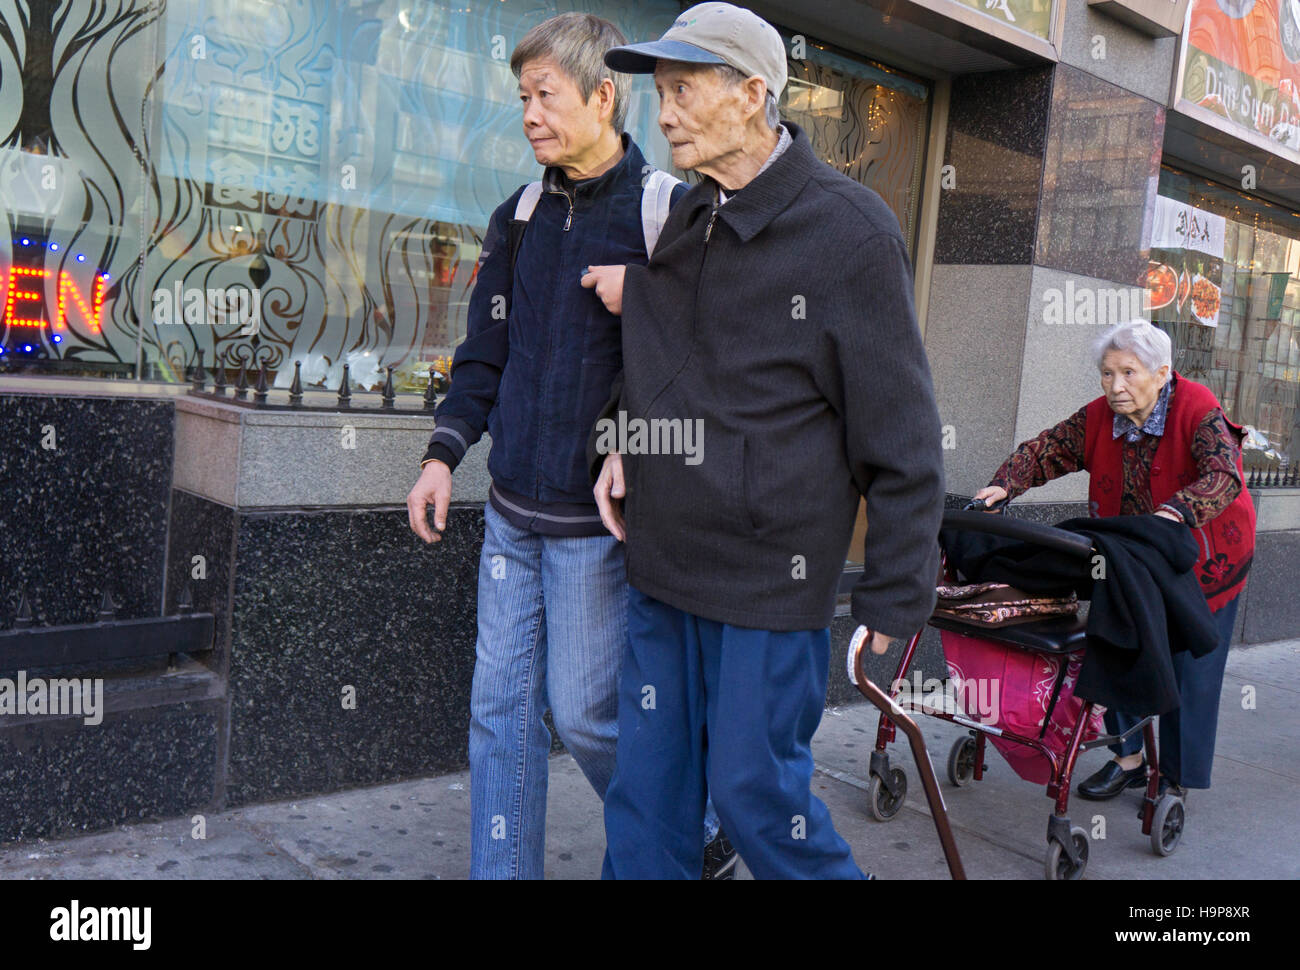 3 elderly Asian Americans walking in Chinatown, downtown Flushing, Queens, New York City - Stock Image